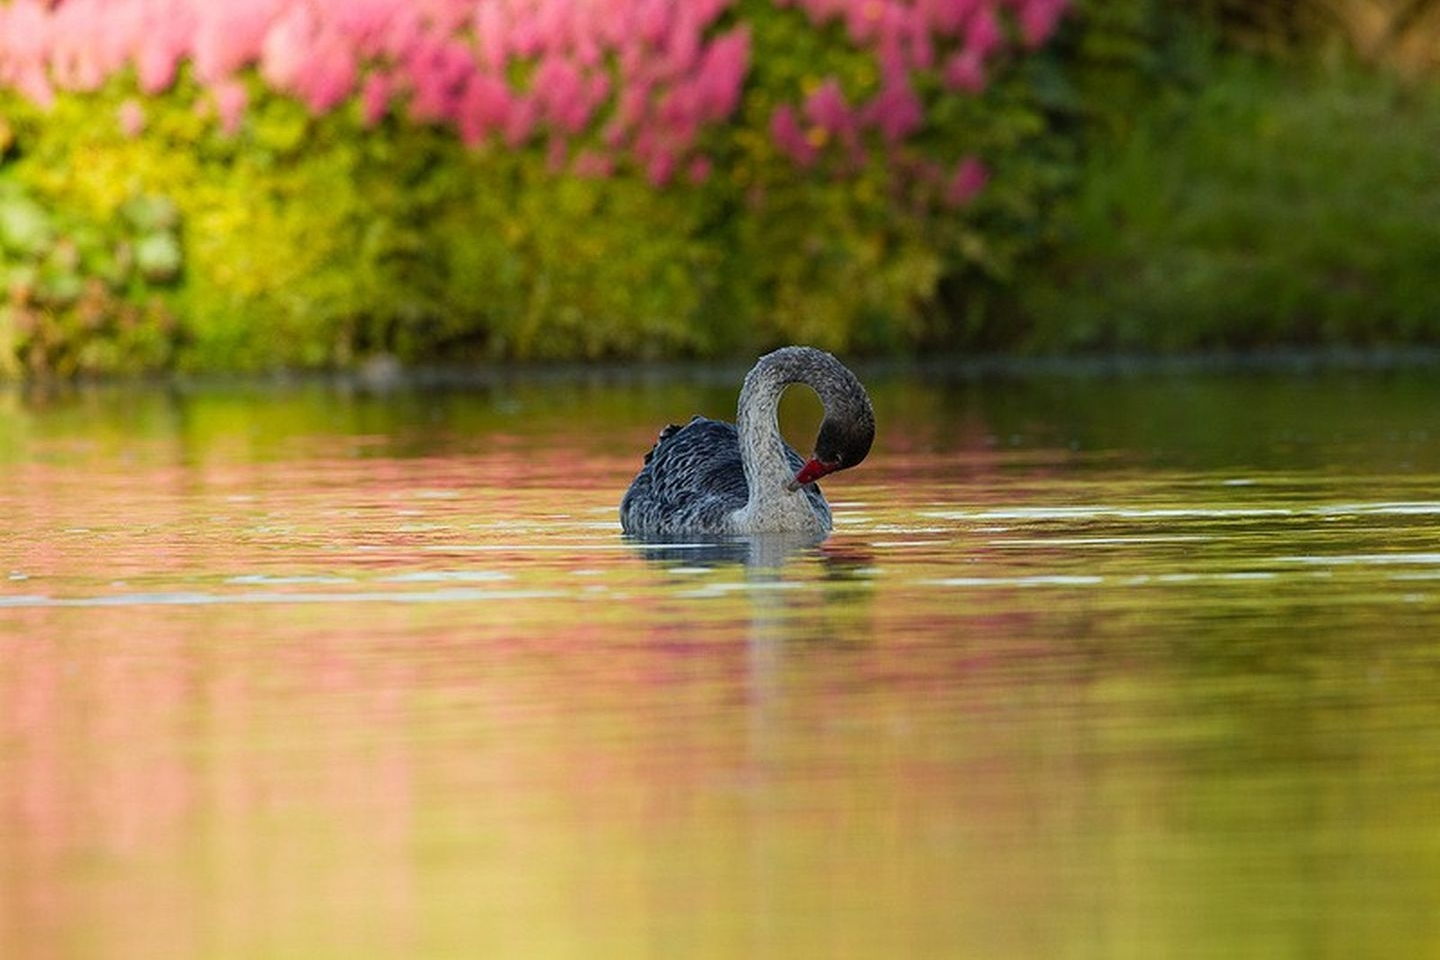 35854 download wallpaper Animals, Birds, Swans screensavers and pictures for free